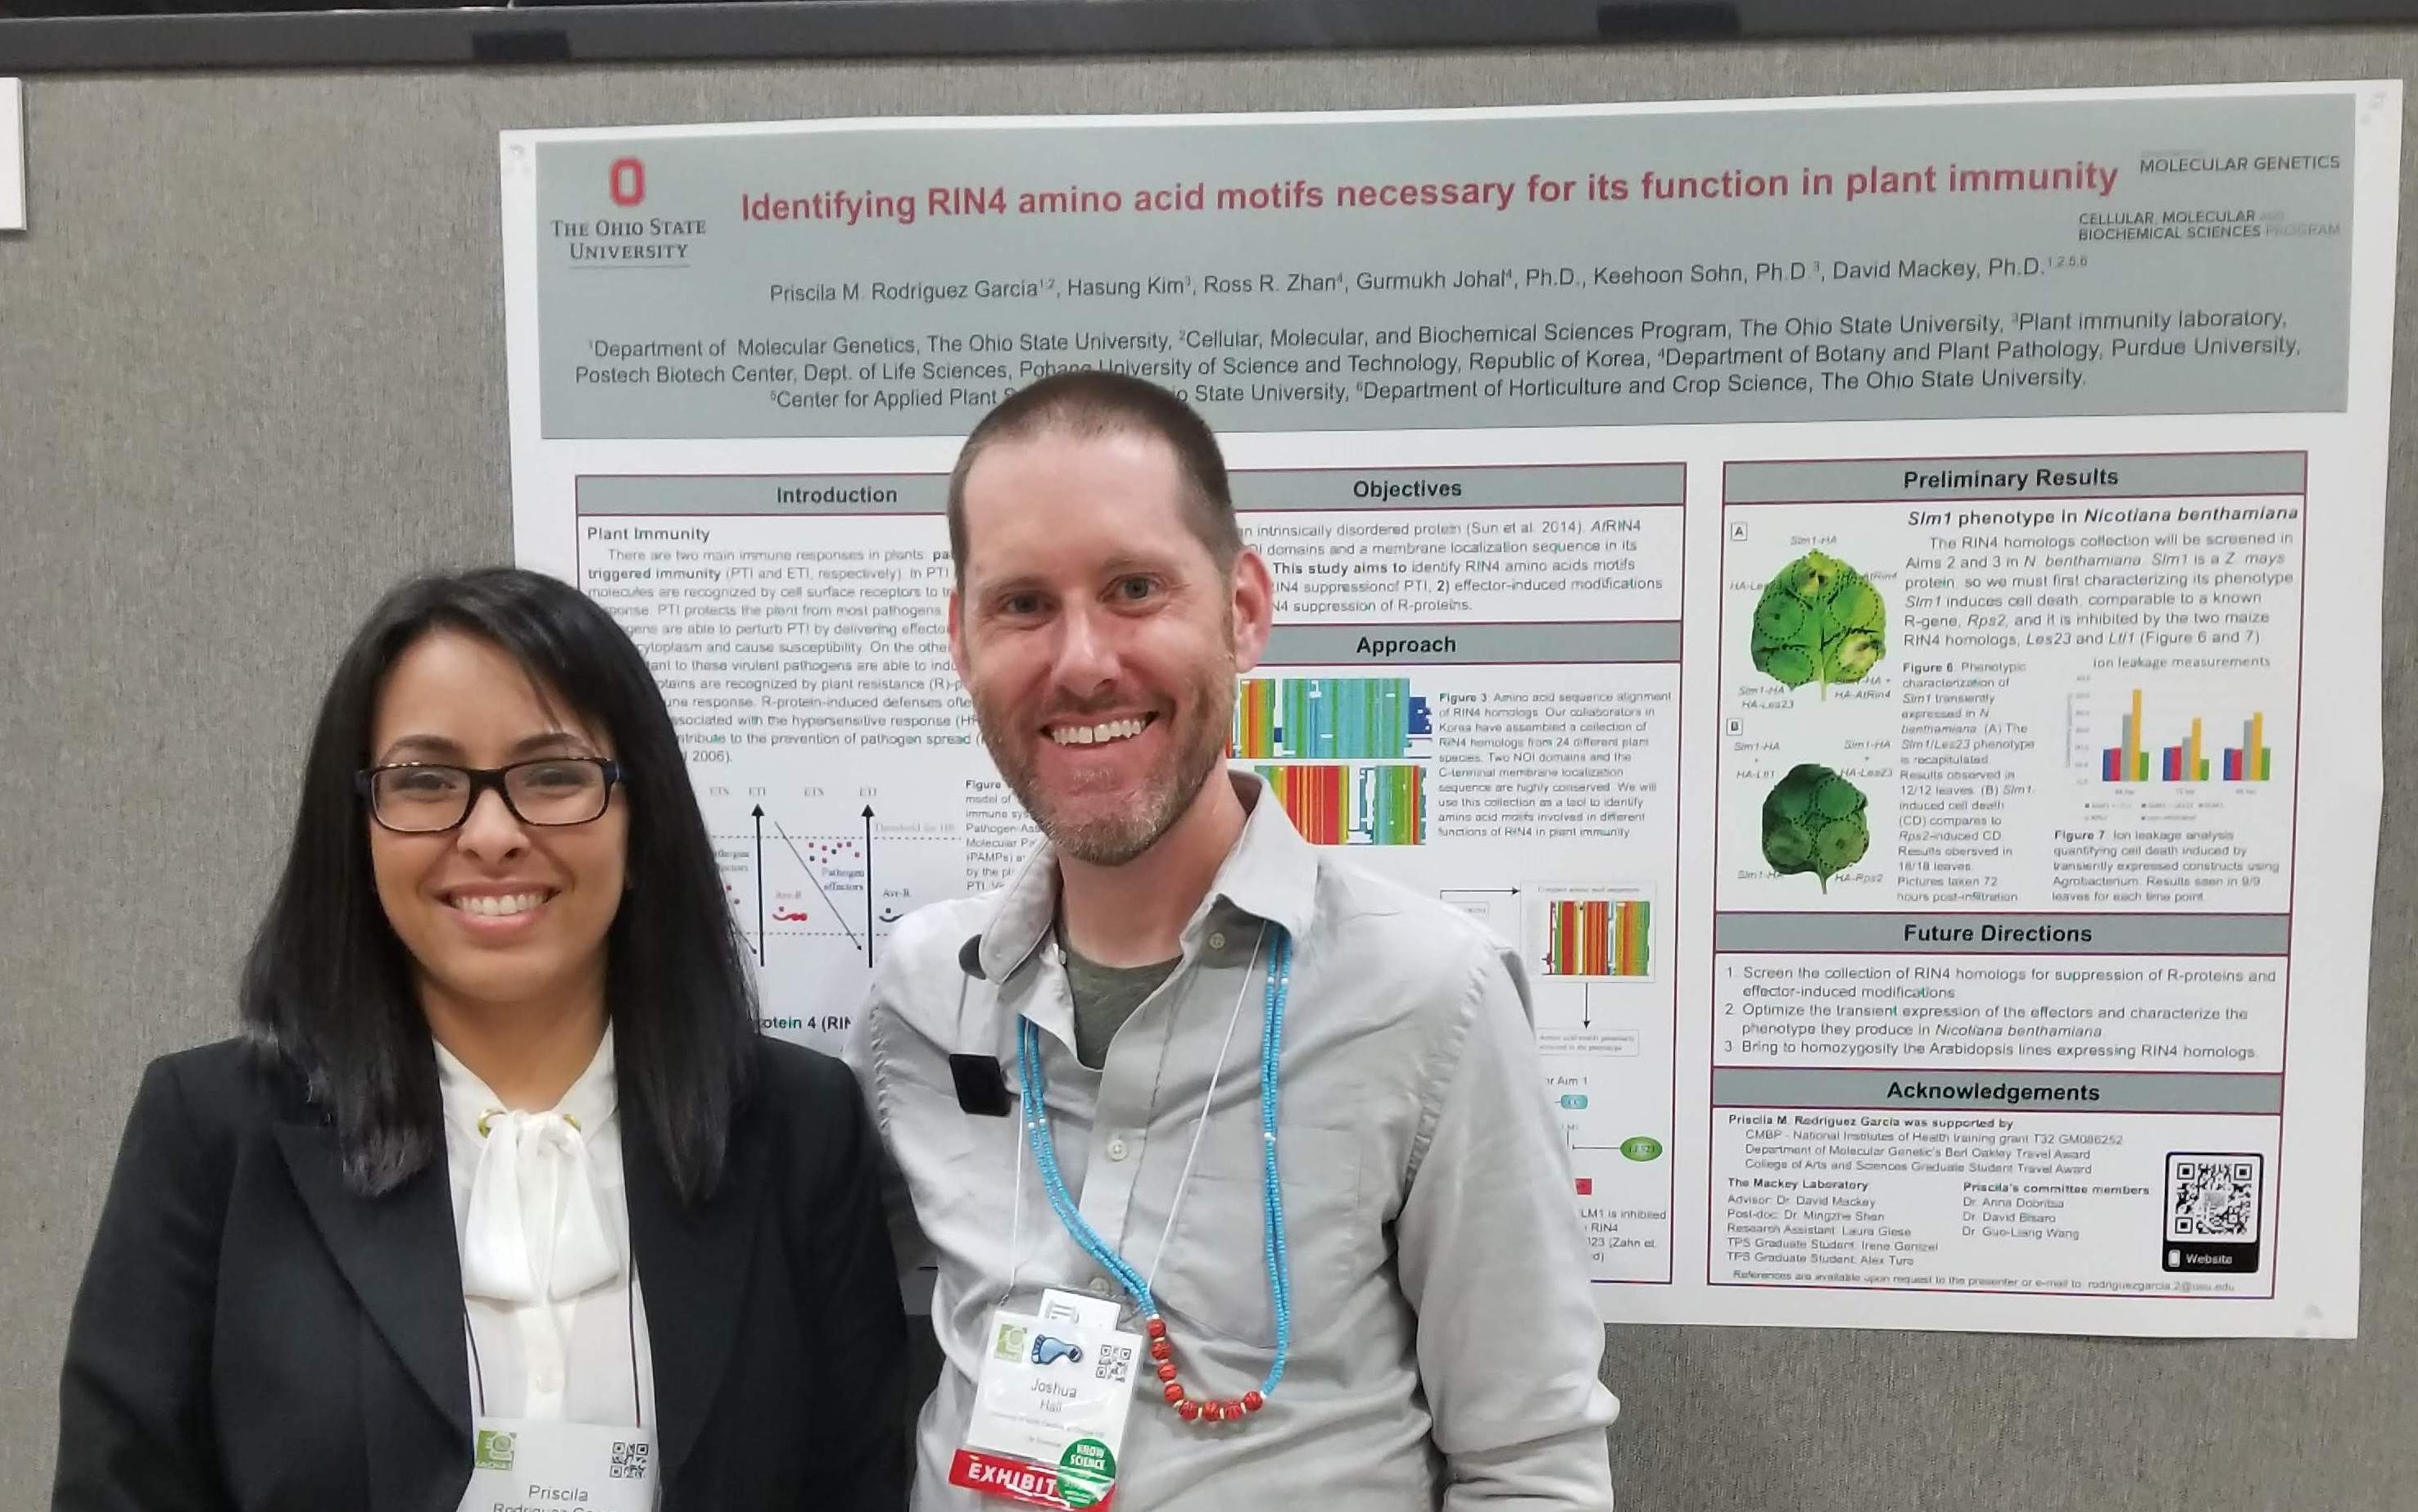 sacnas-2018-with-joshua-hall.jpg